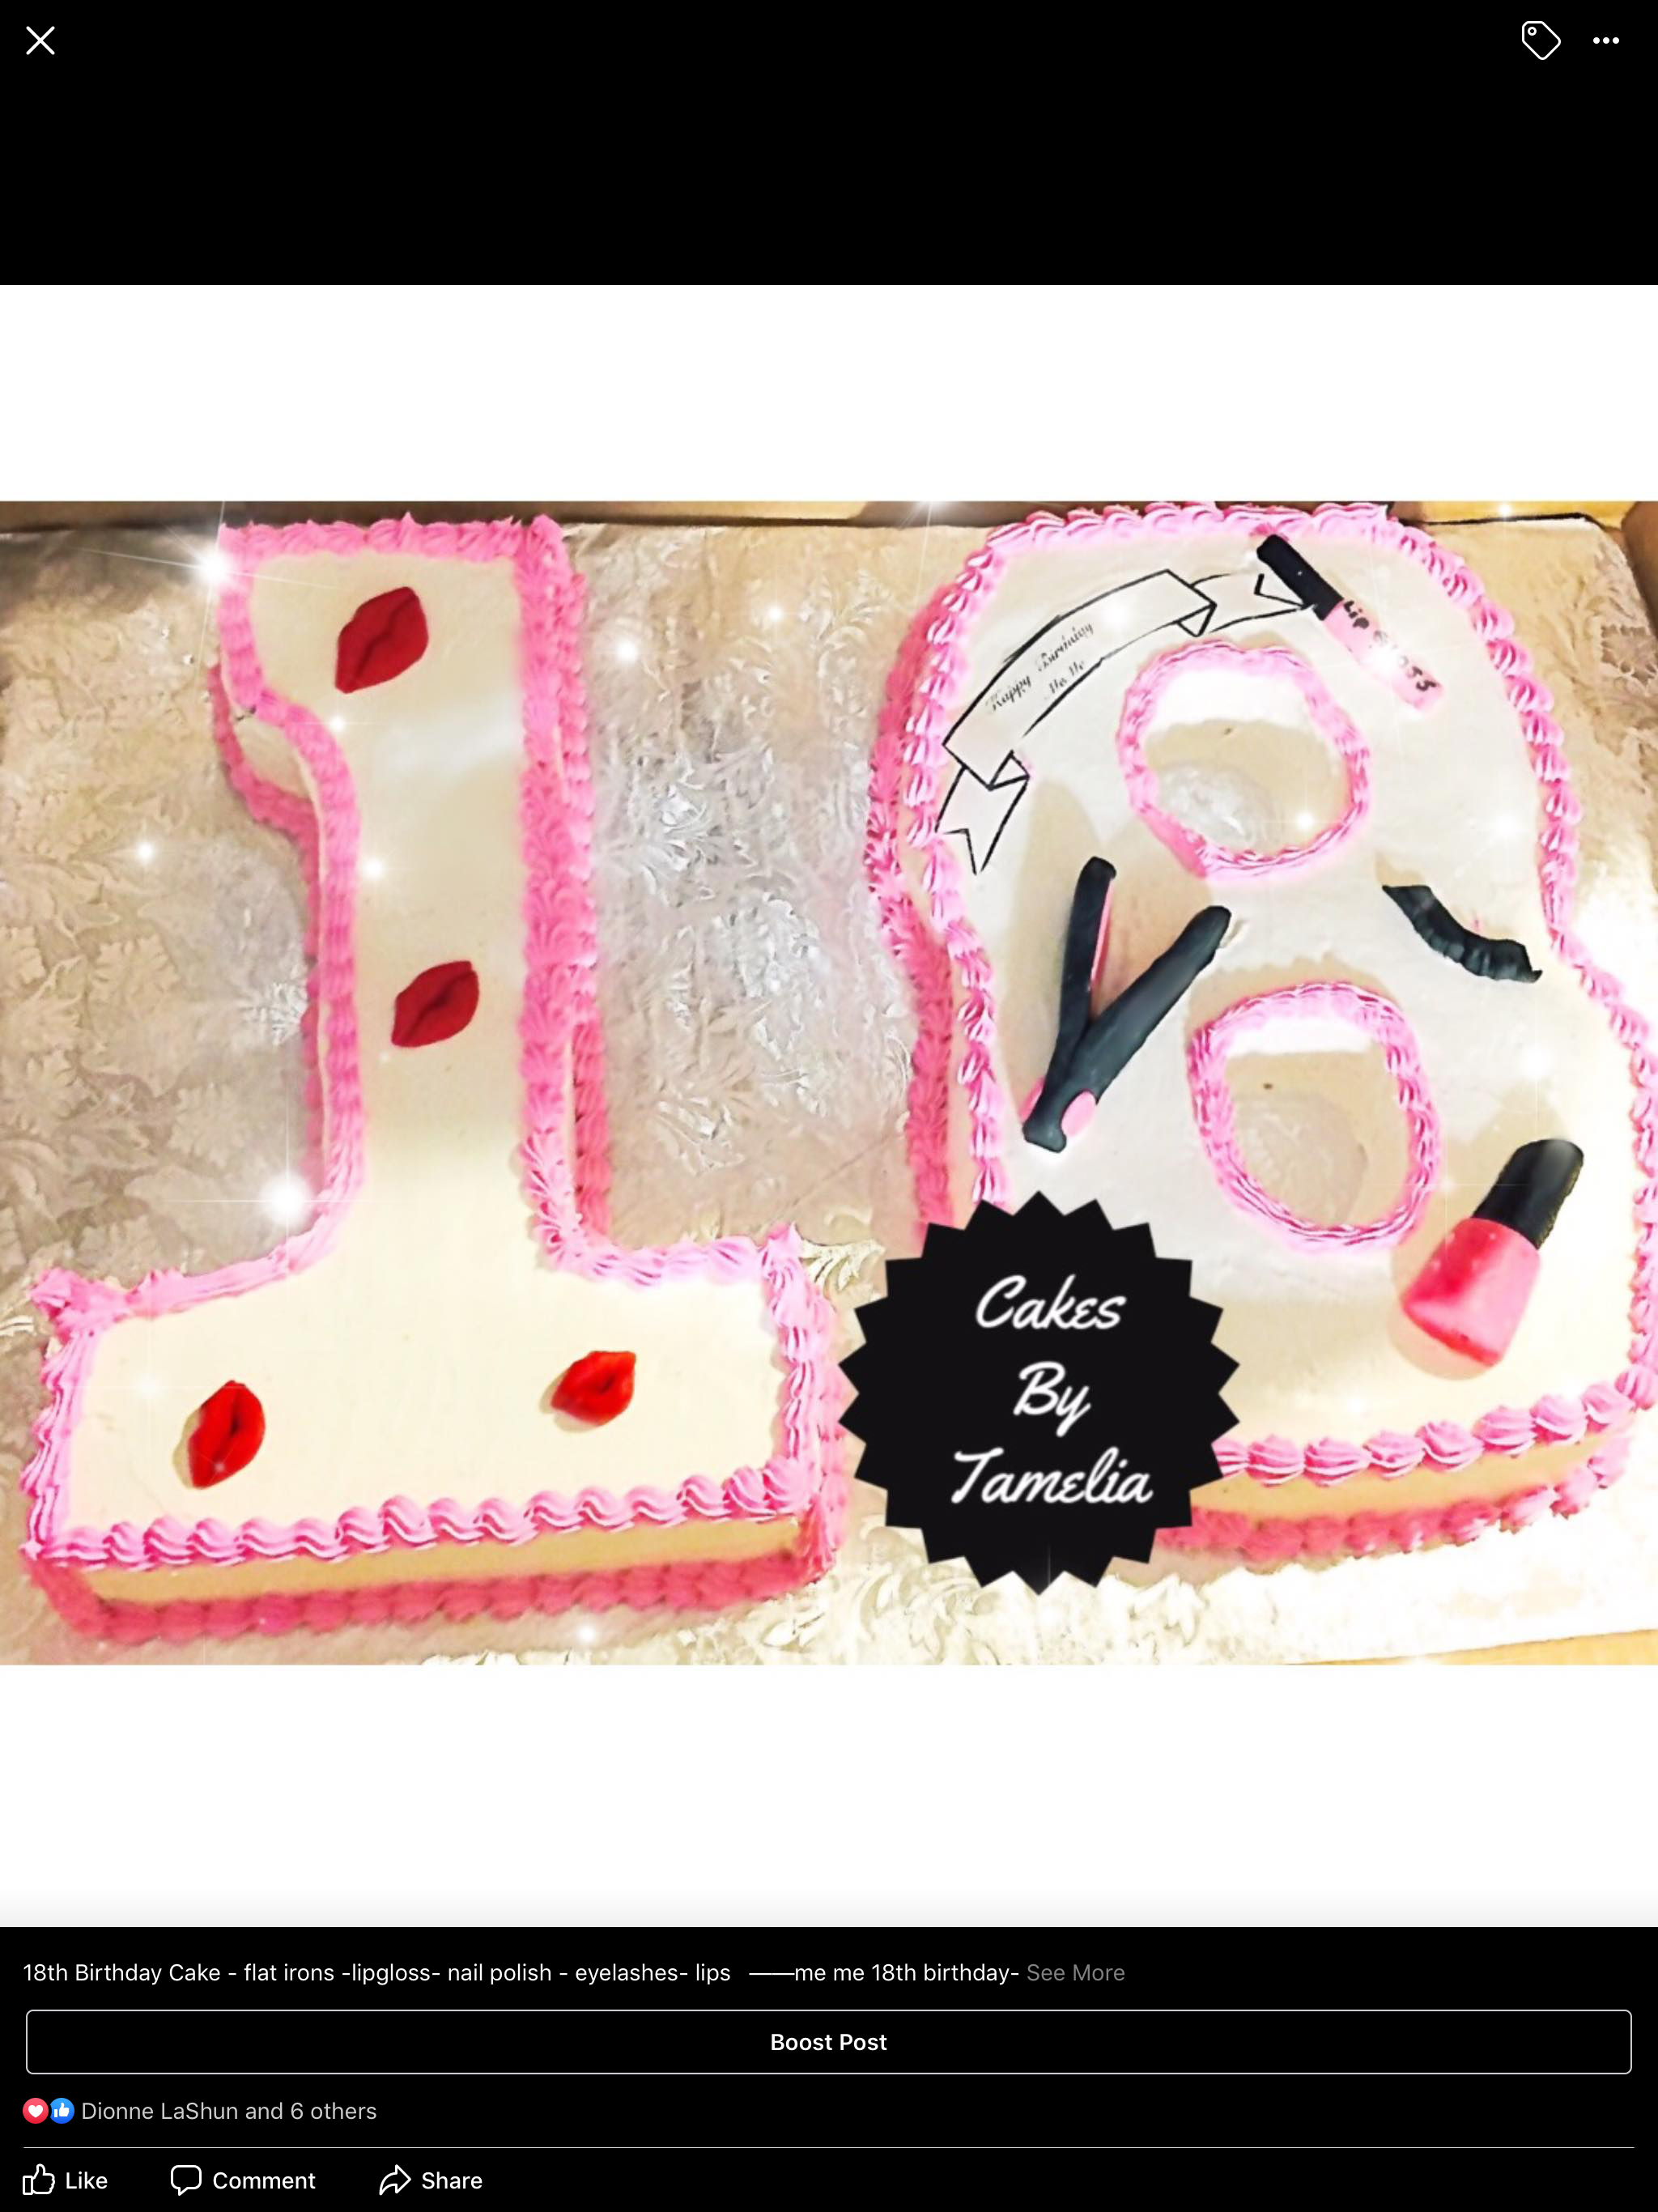 pnk and white number 18 cake